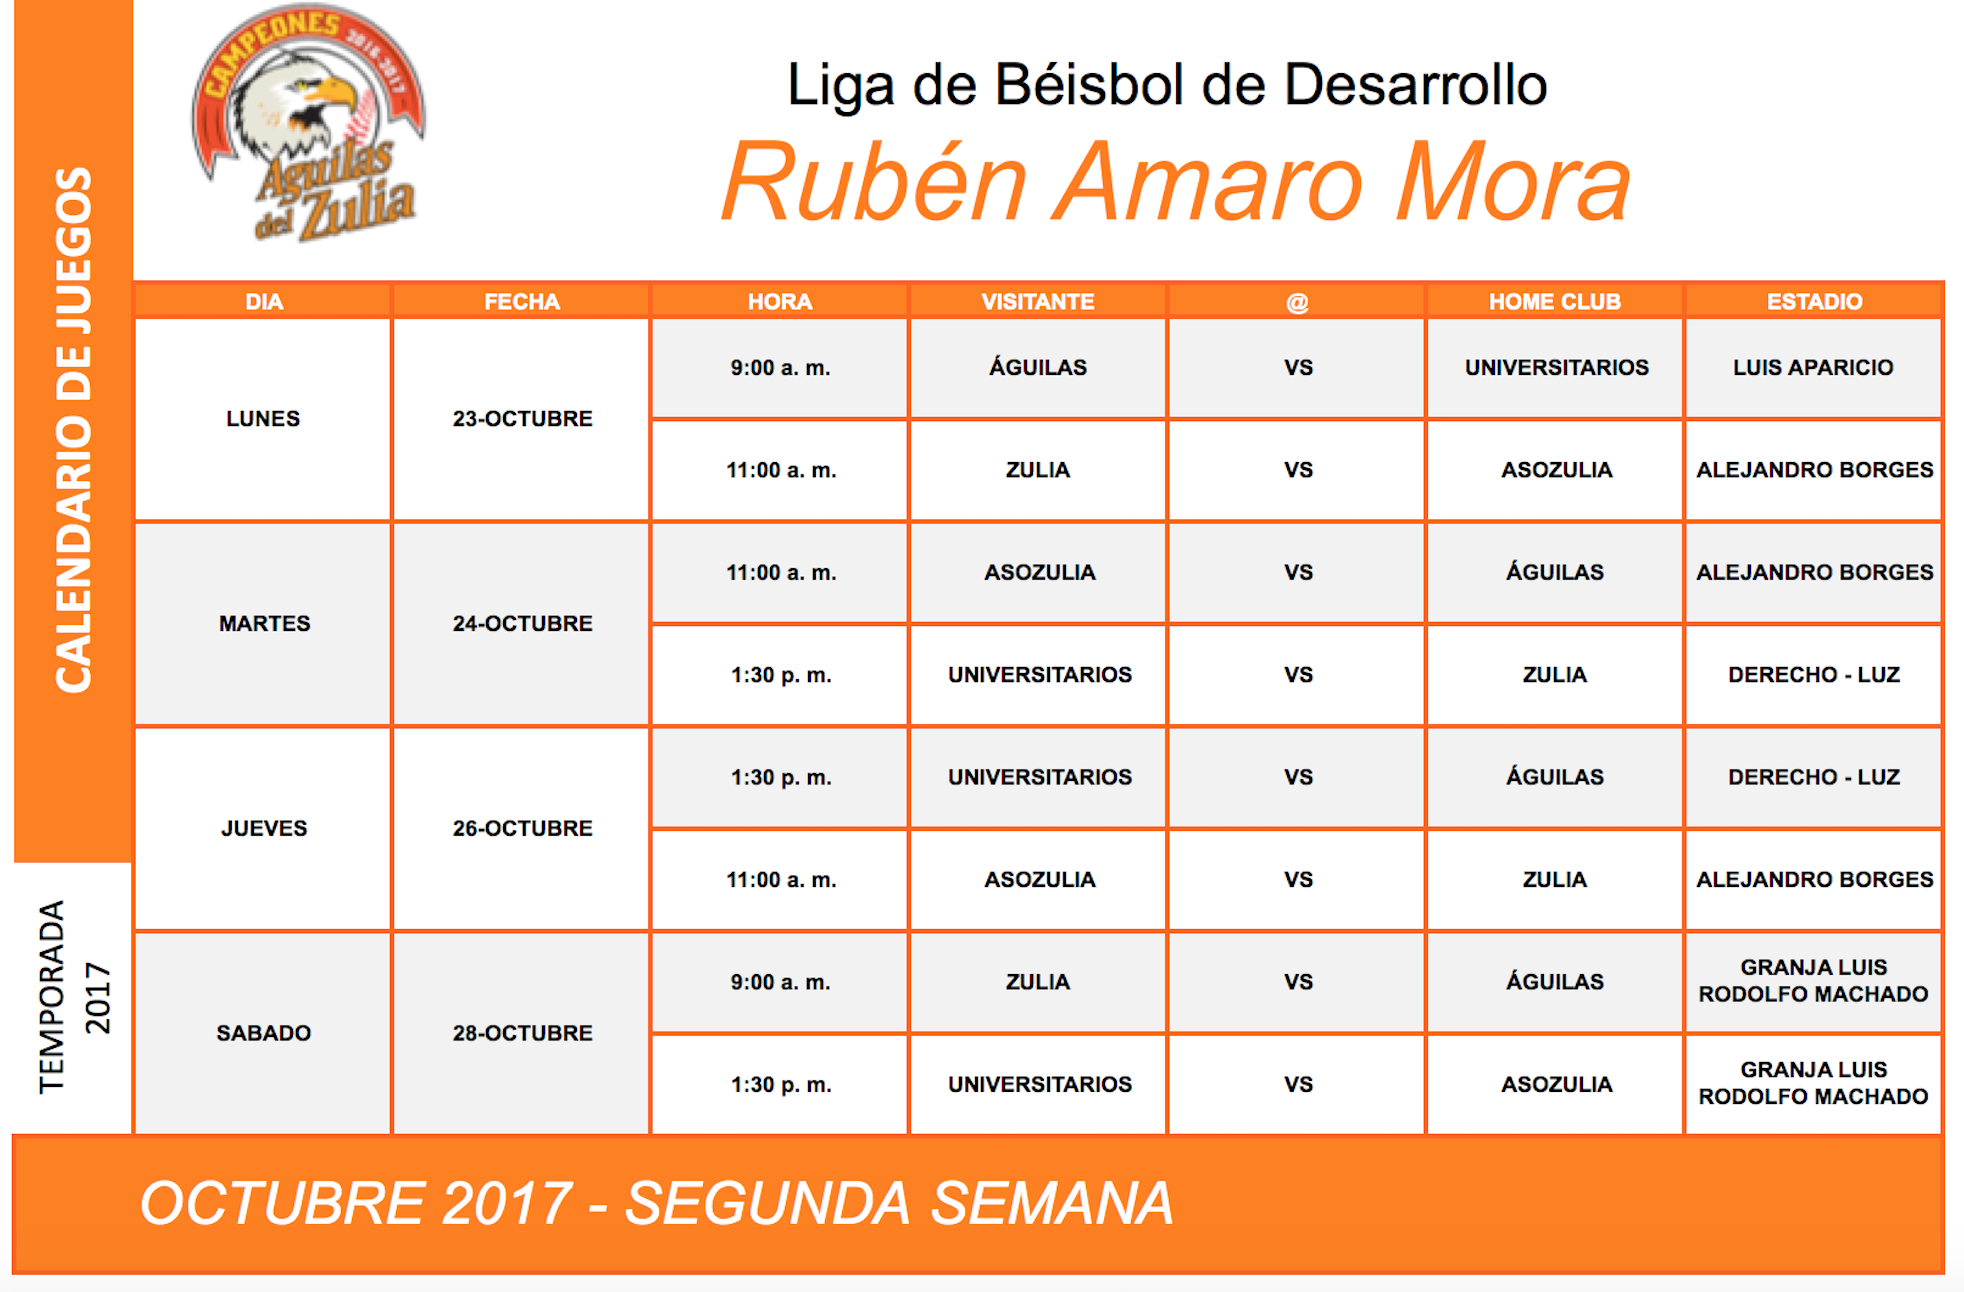 CalendarioLigaBeisbolDesarrollo2017